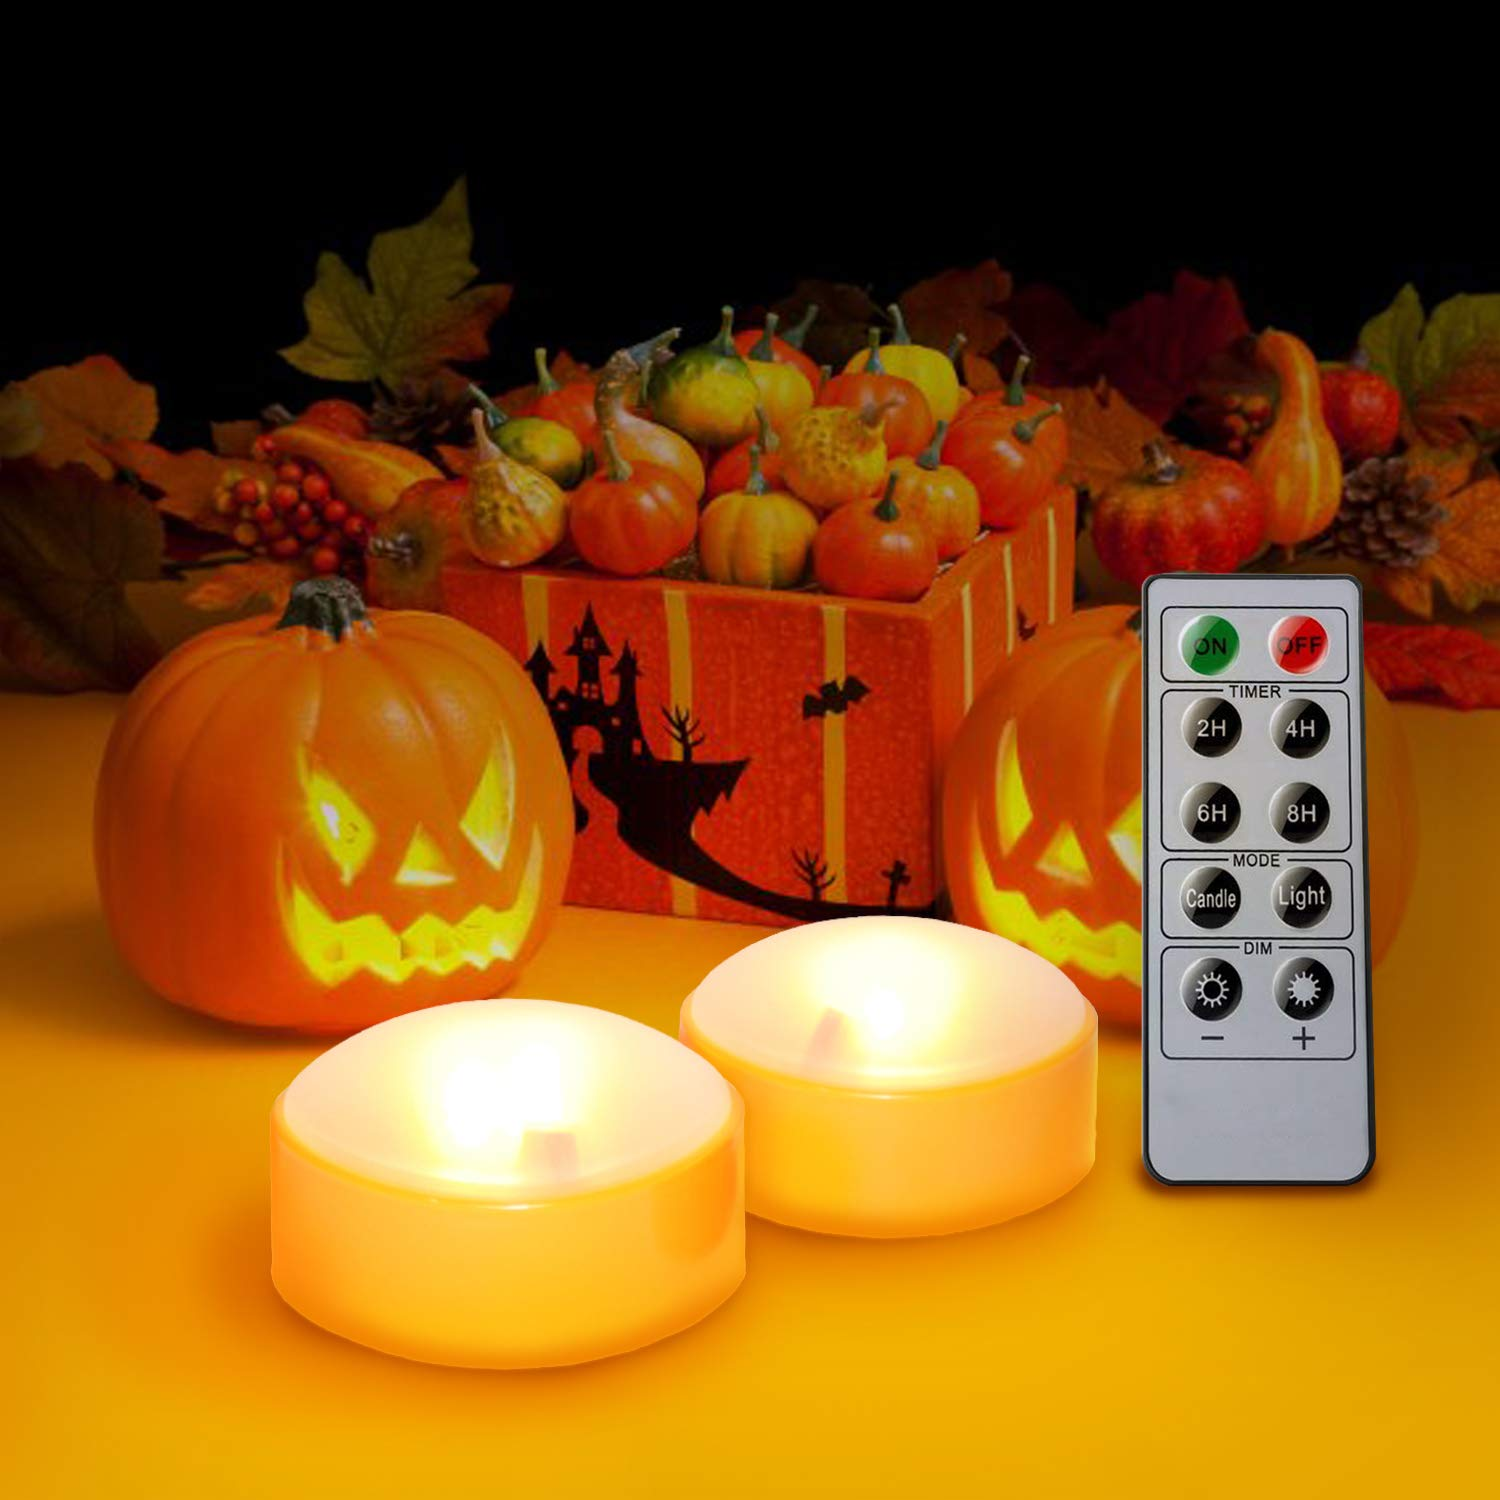 Kohree LED Organe Pumpkin Lights Battery Operated with Remote and Timer, Halloween Decorative Jack-O-Lantern Light Decor, Flameless Candles for Pumpkins Party Decorations Set of 2 by Kohree